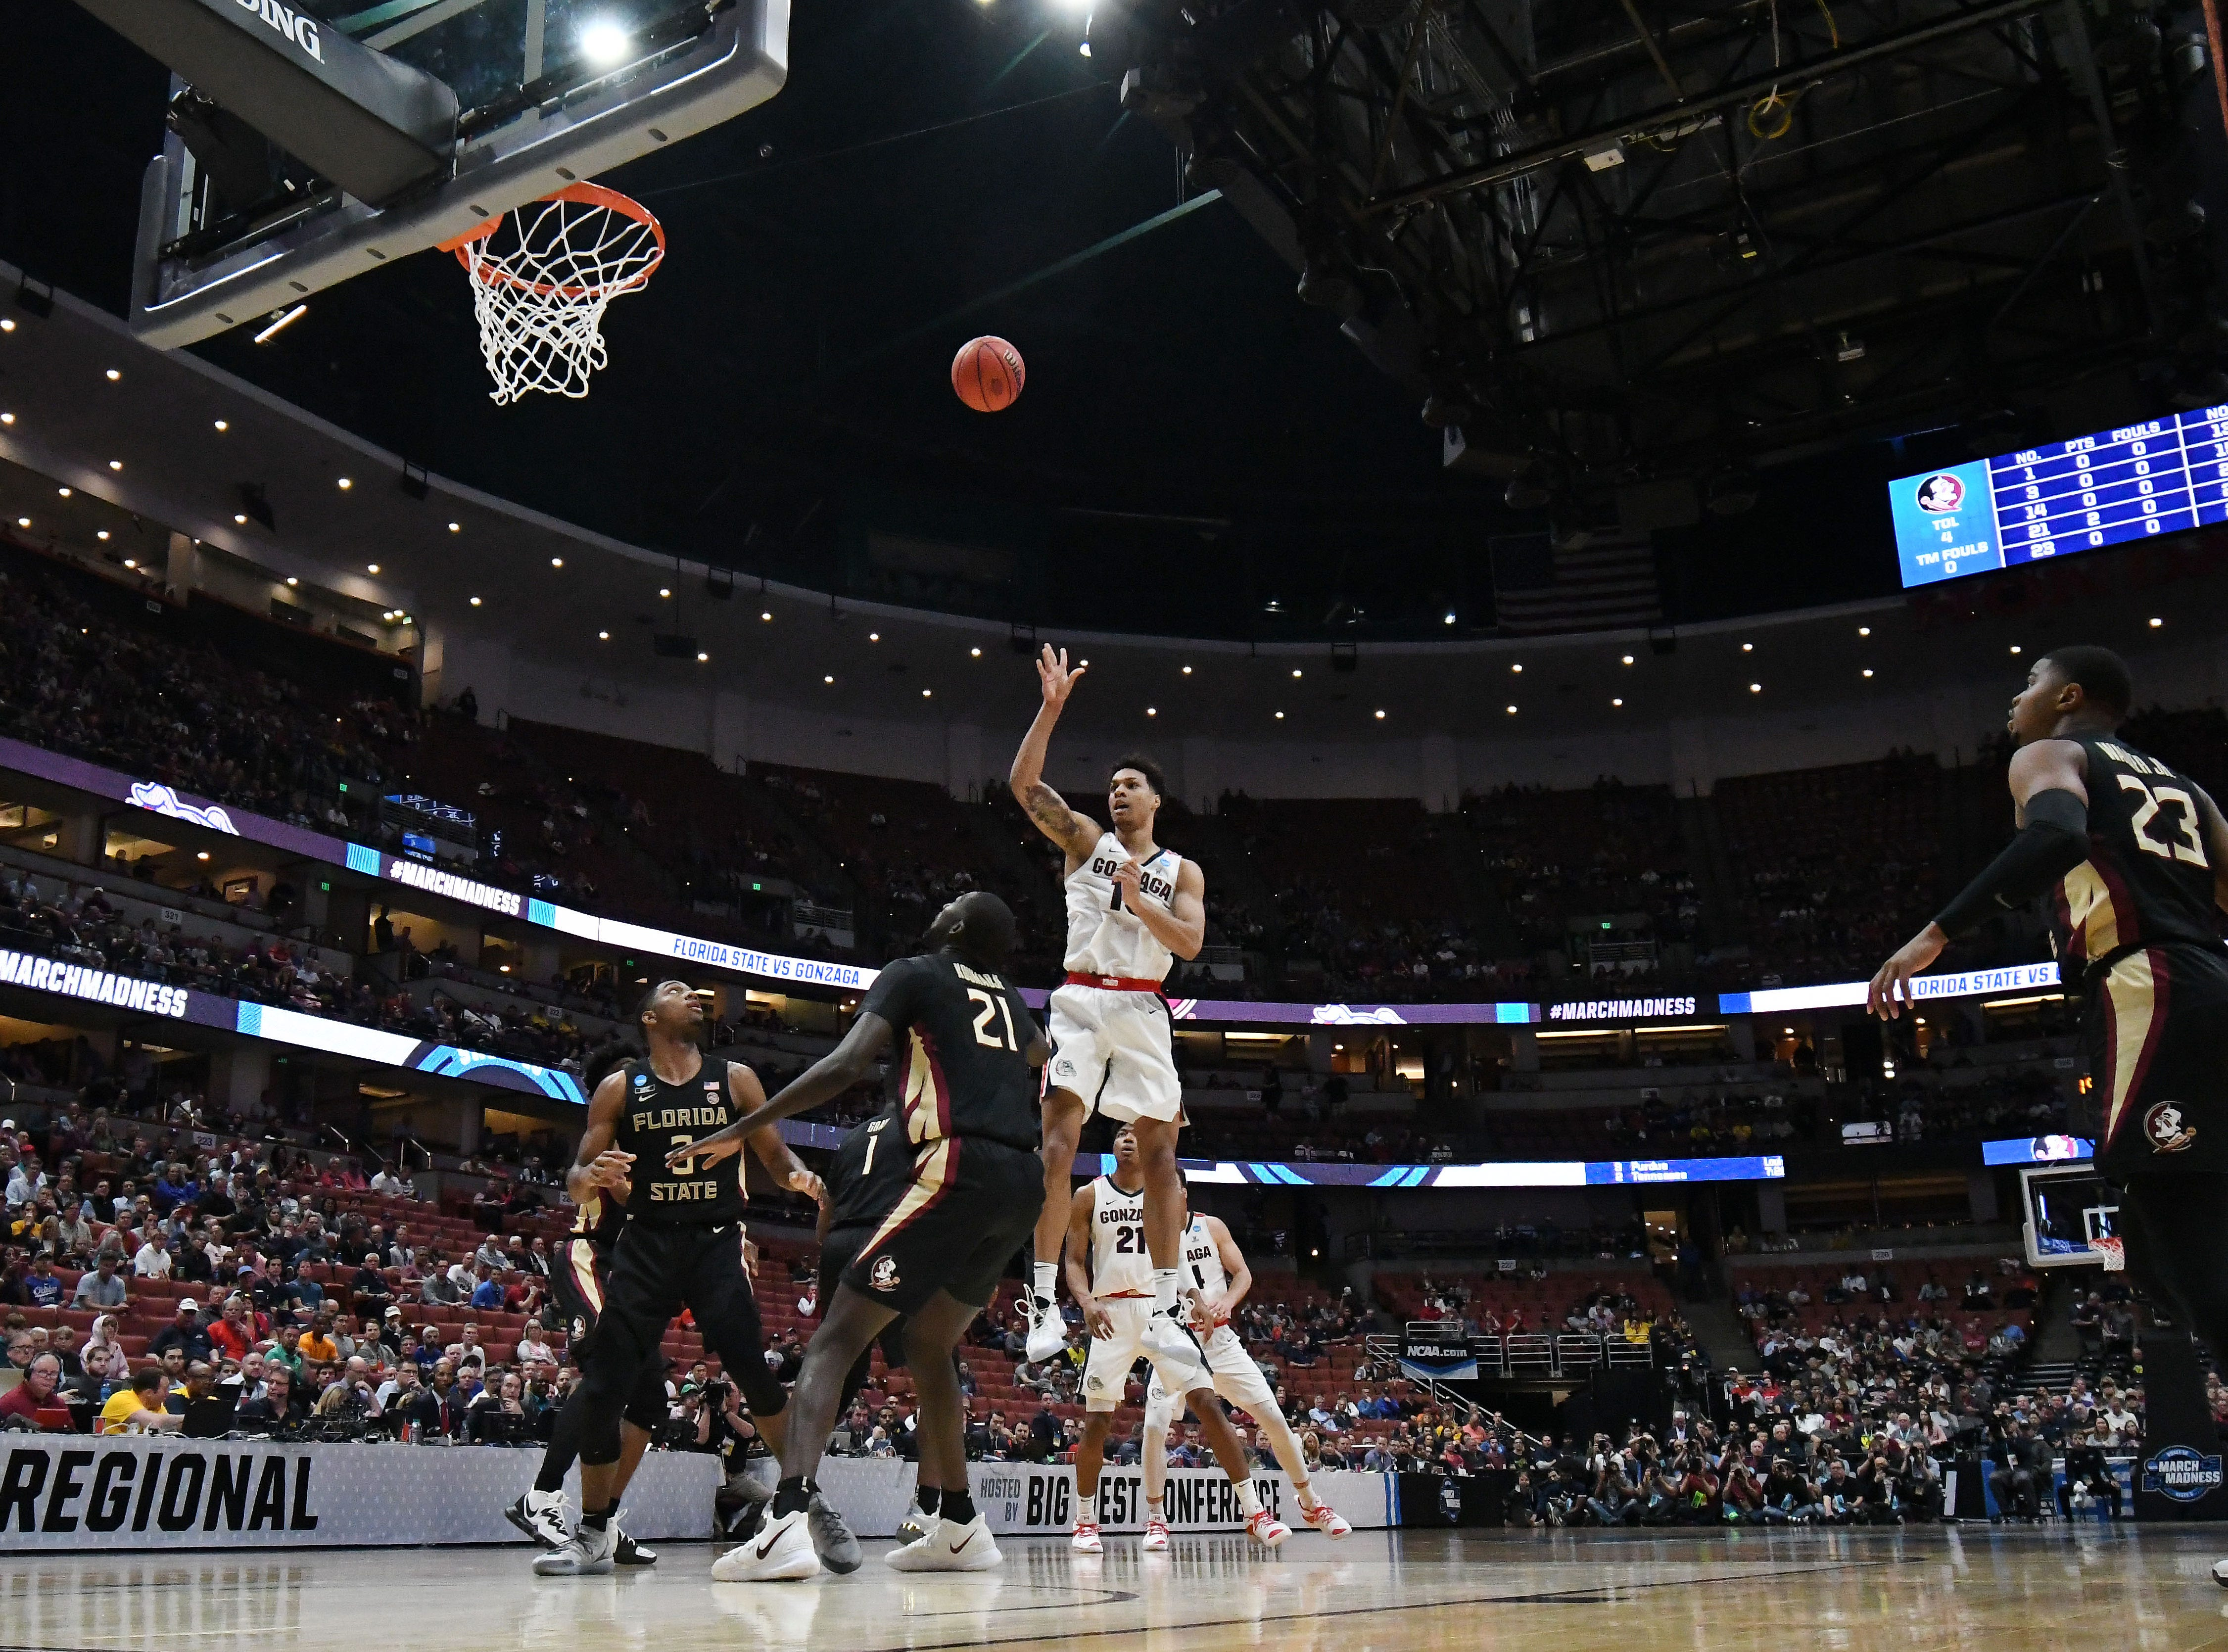 March 28, 2019; Anaheim, CA, USA; Gonzaga Bulldogs forward Brandon Clarke (15) shoots against Florida State Seminoles during the first half in the semifinals of the west regional of the 2019 NCAA Tournament at Honda Center. Mandatory Credit: Richard Mackson-USA TODAY Sports